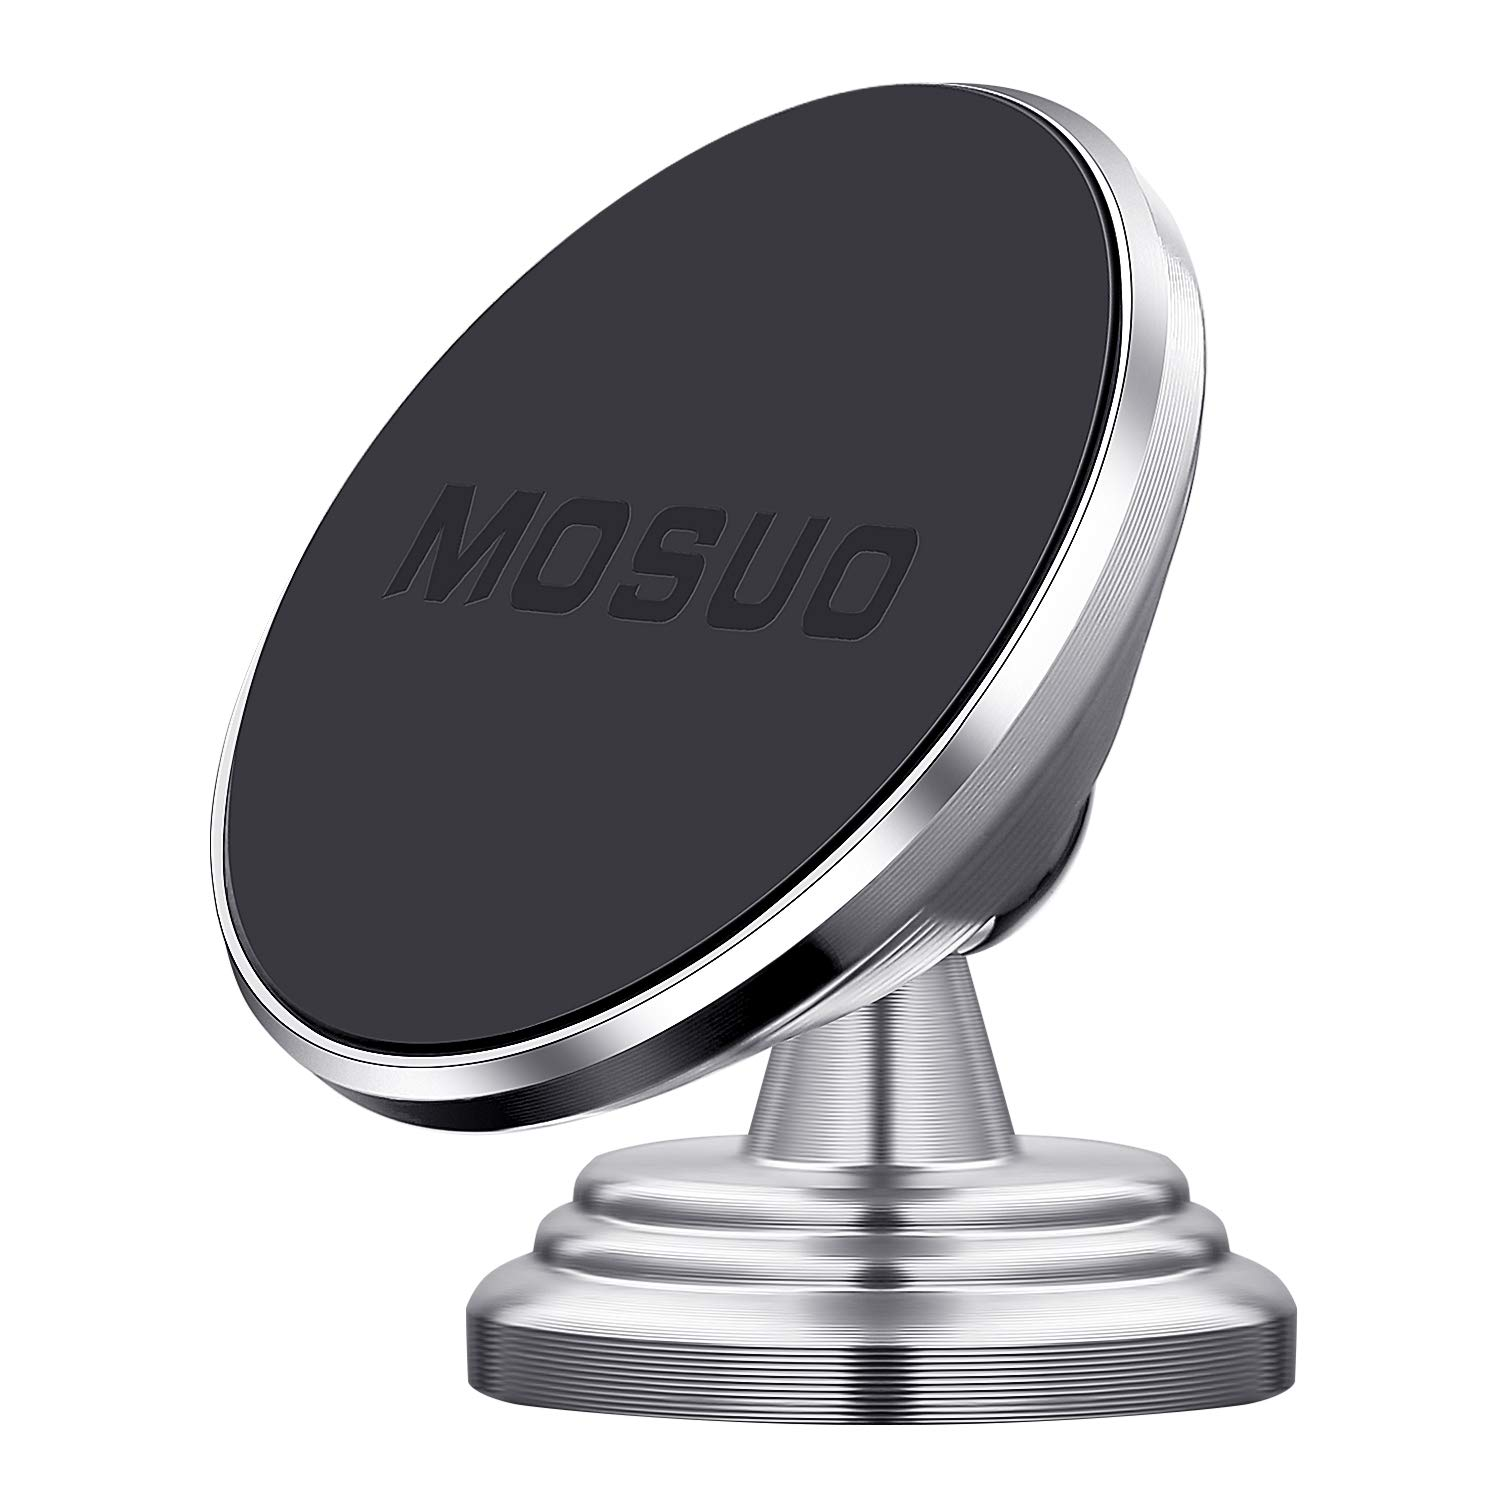 MOSUO Magnetic Car Phone Holder Dashboard Car Phone Mount 360° Rotation,  Universal Car Cradle with Metal Plates Sticky for iPhone Xs  Max/Xs/XR/X/8/7/6